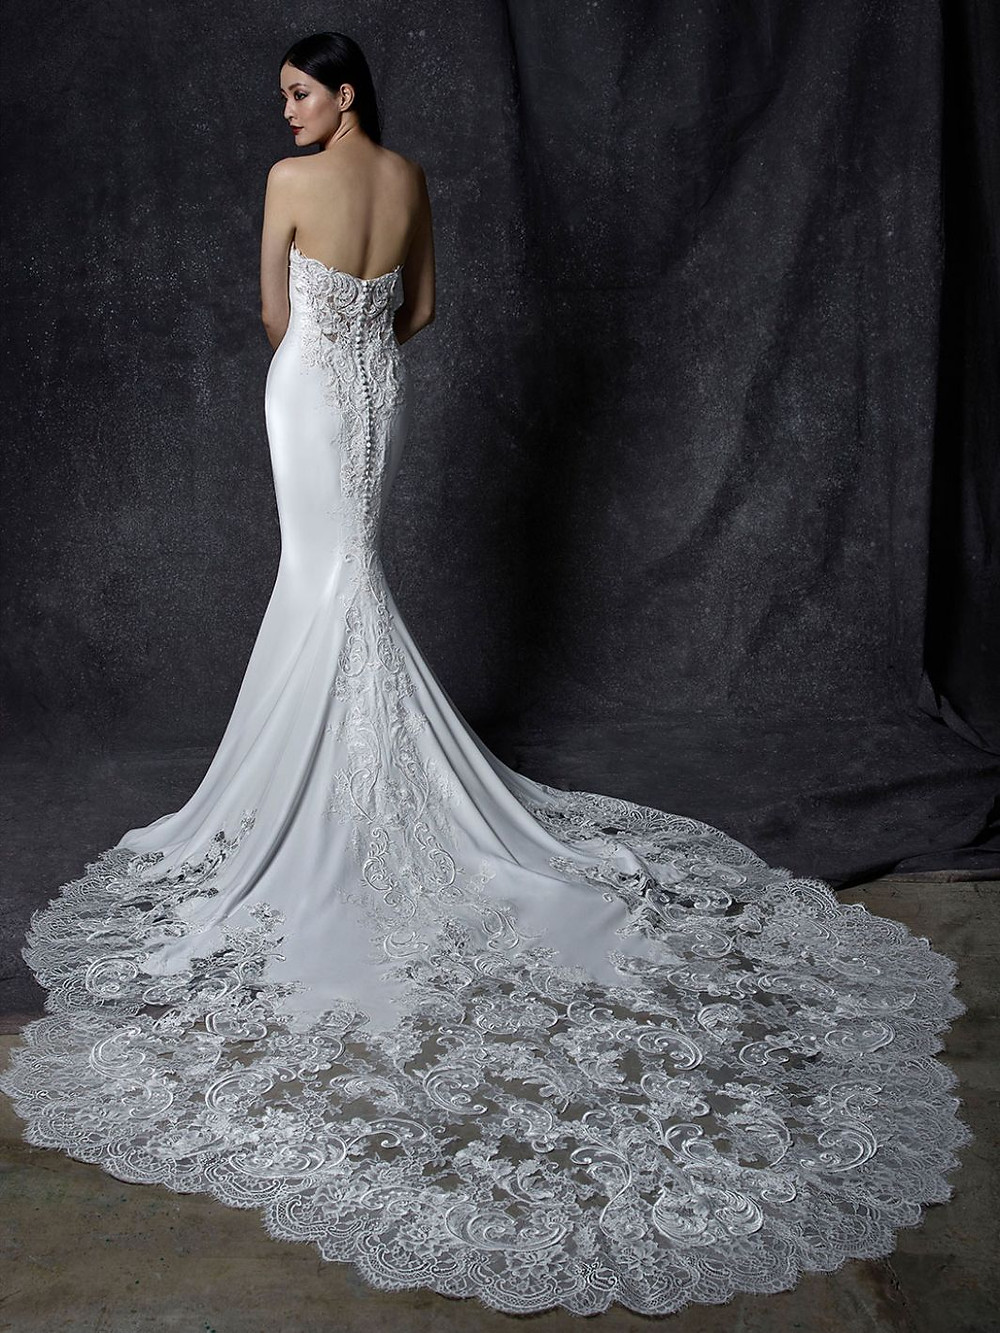 An Enzoani strapless silk wedding dress with lace and a long train